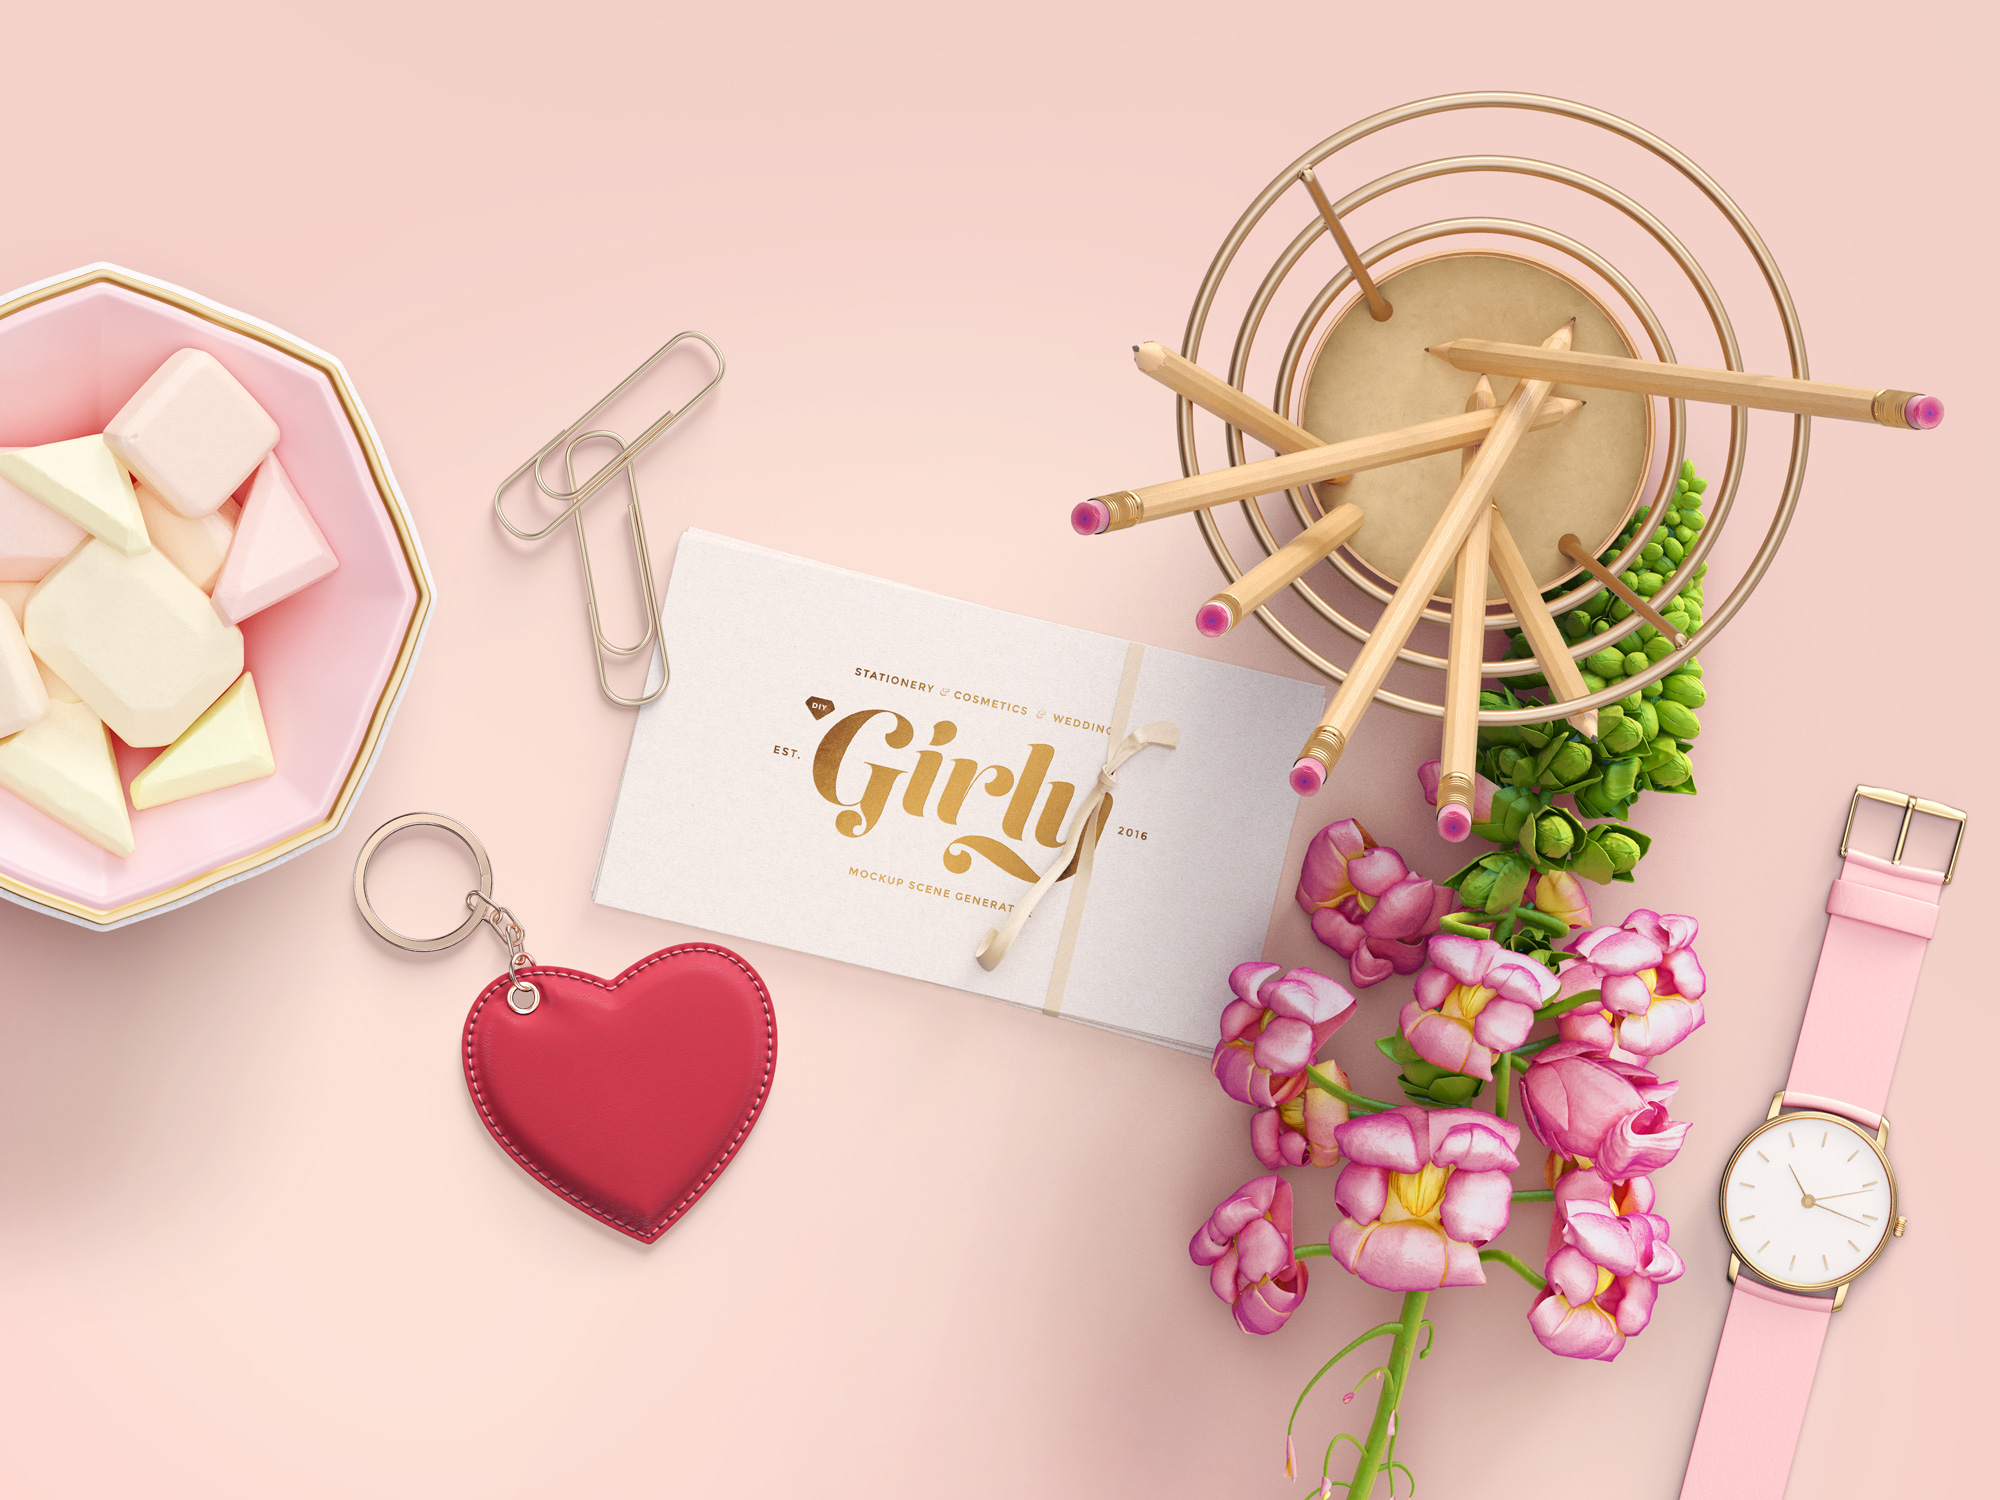 Three Girly Branding Mockups